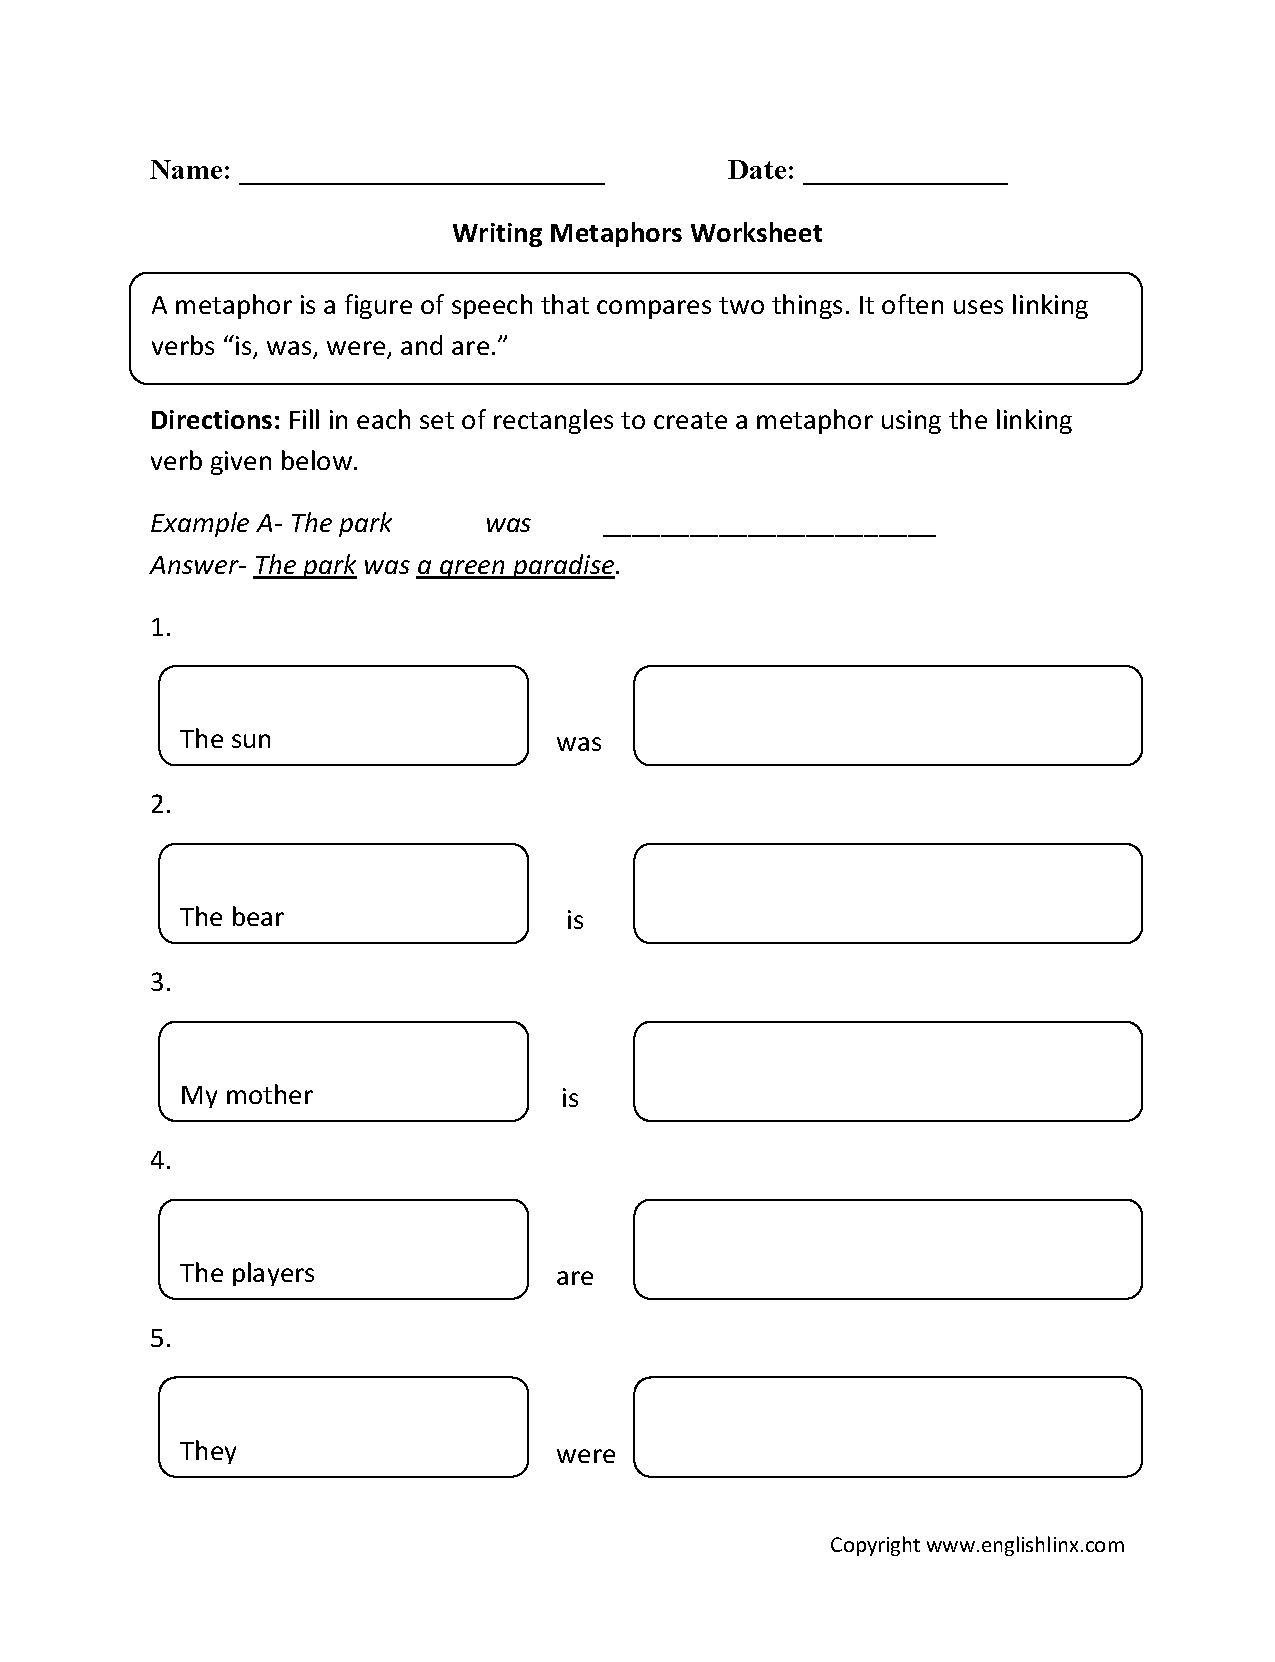 Writing Metaphors Worksheet